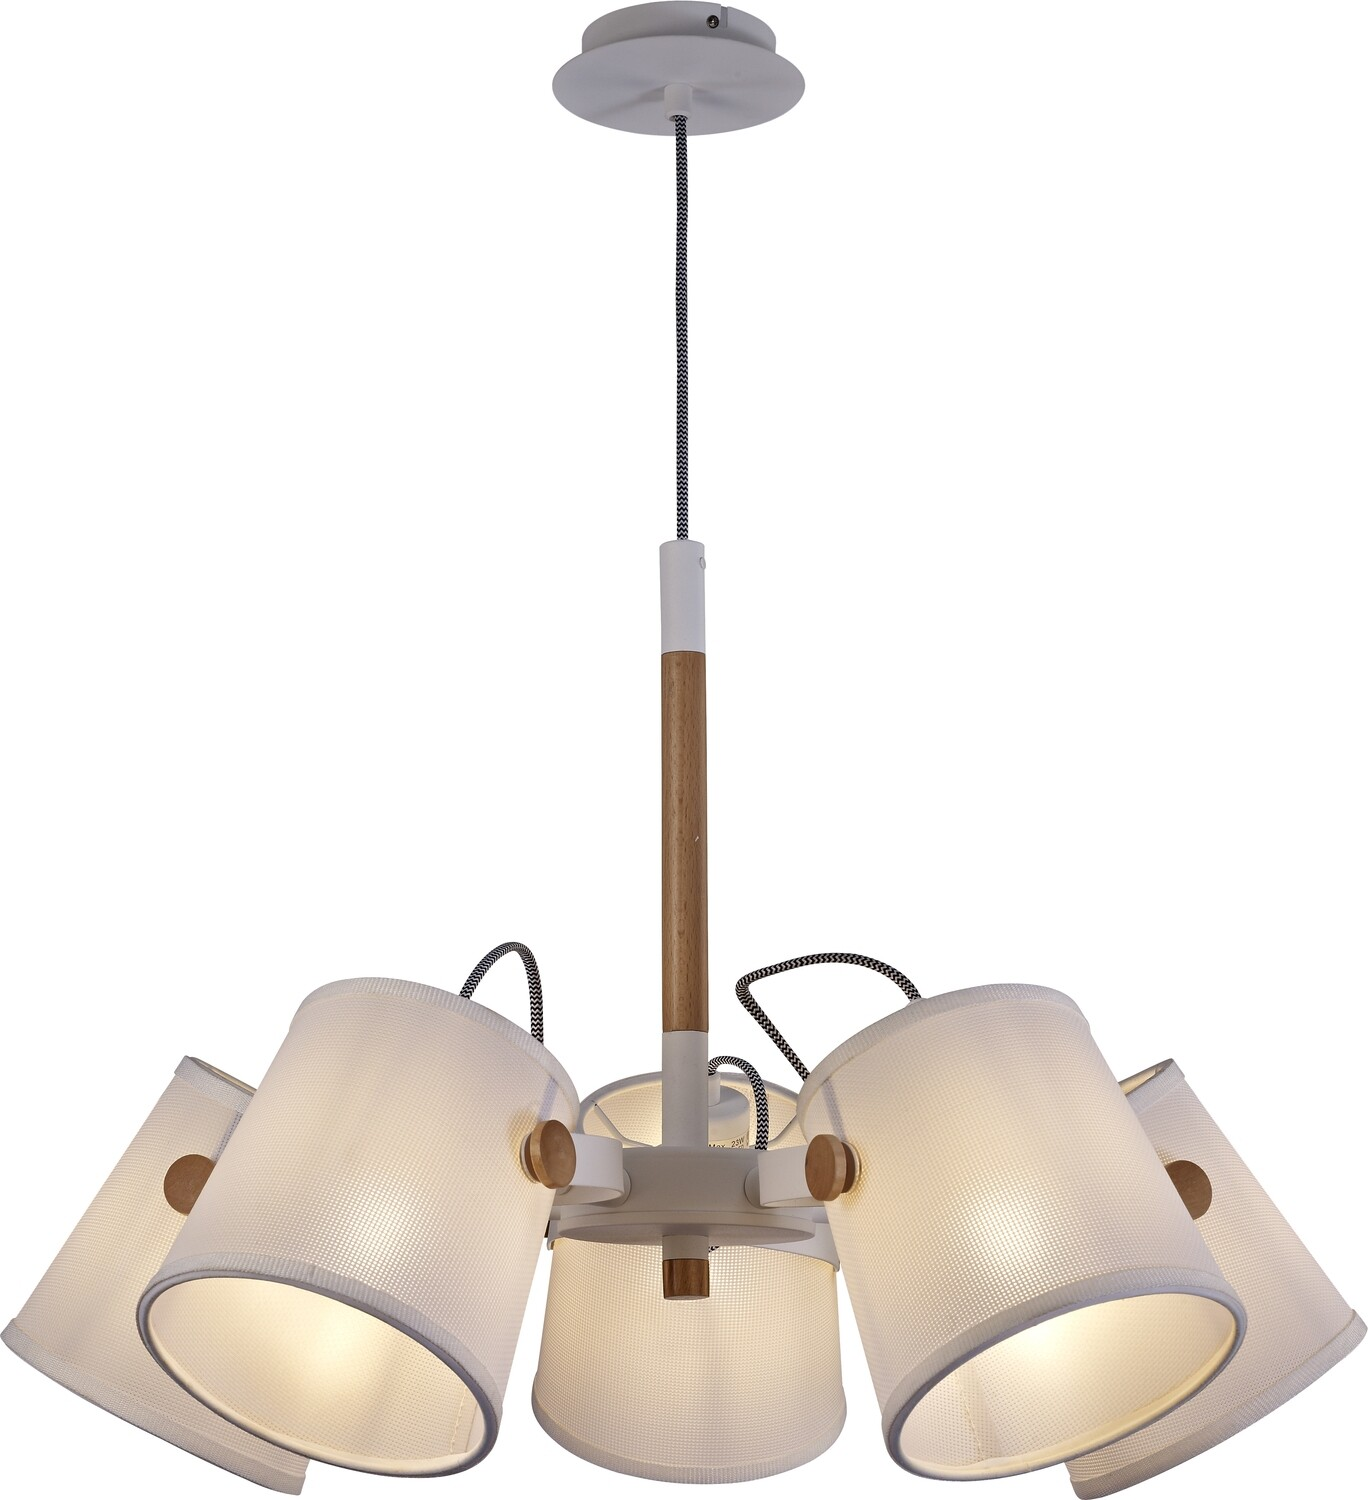 Nordica II Position Pendant 5xE27, White/Beech With Ivory Shades